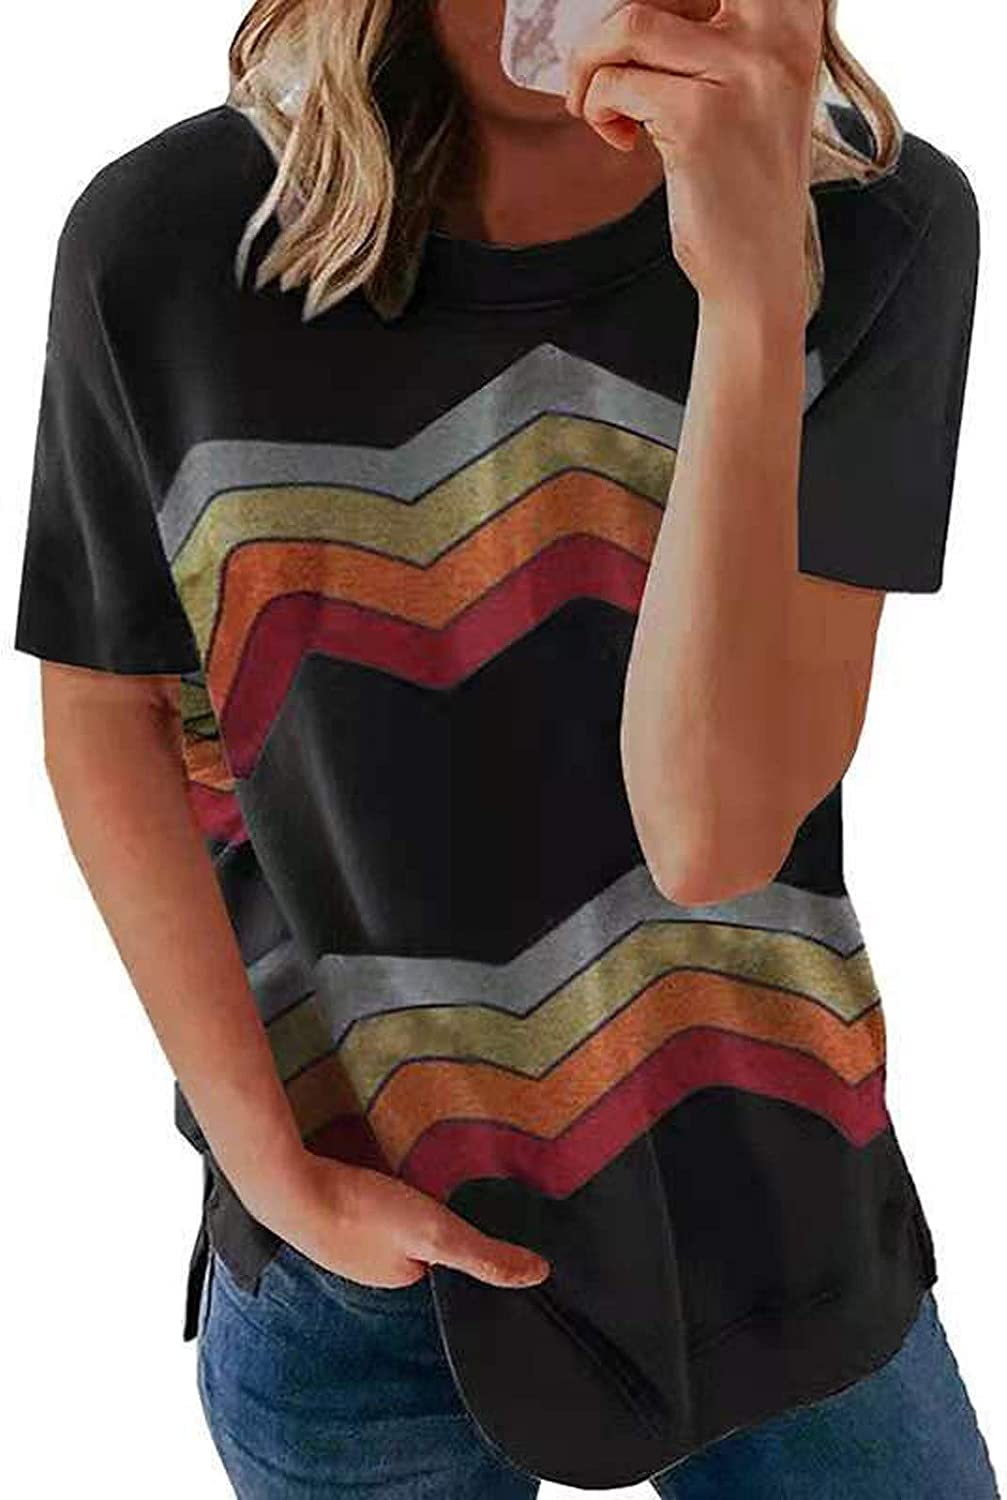 Women Quantity limited Graphic Tee Womens Short Sleeve Cas Shirts Crewneck Loose Limited price sale